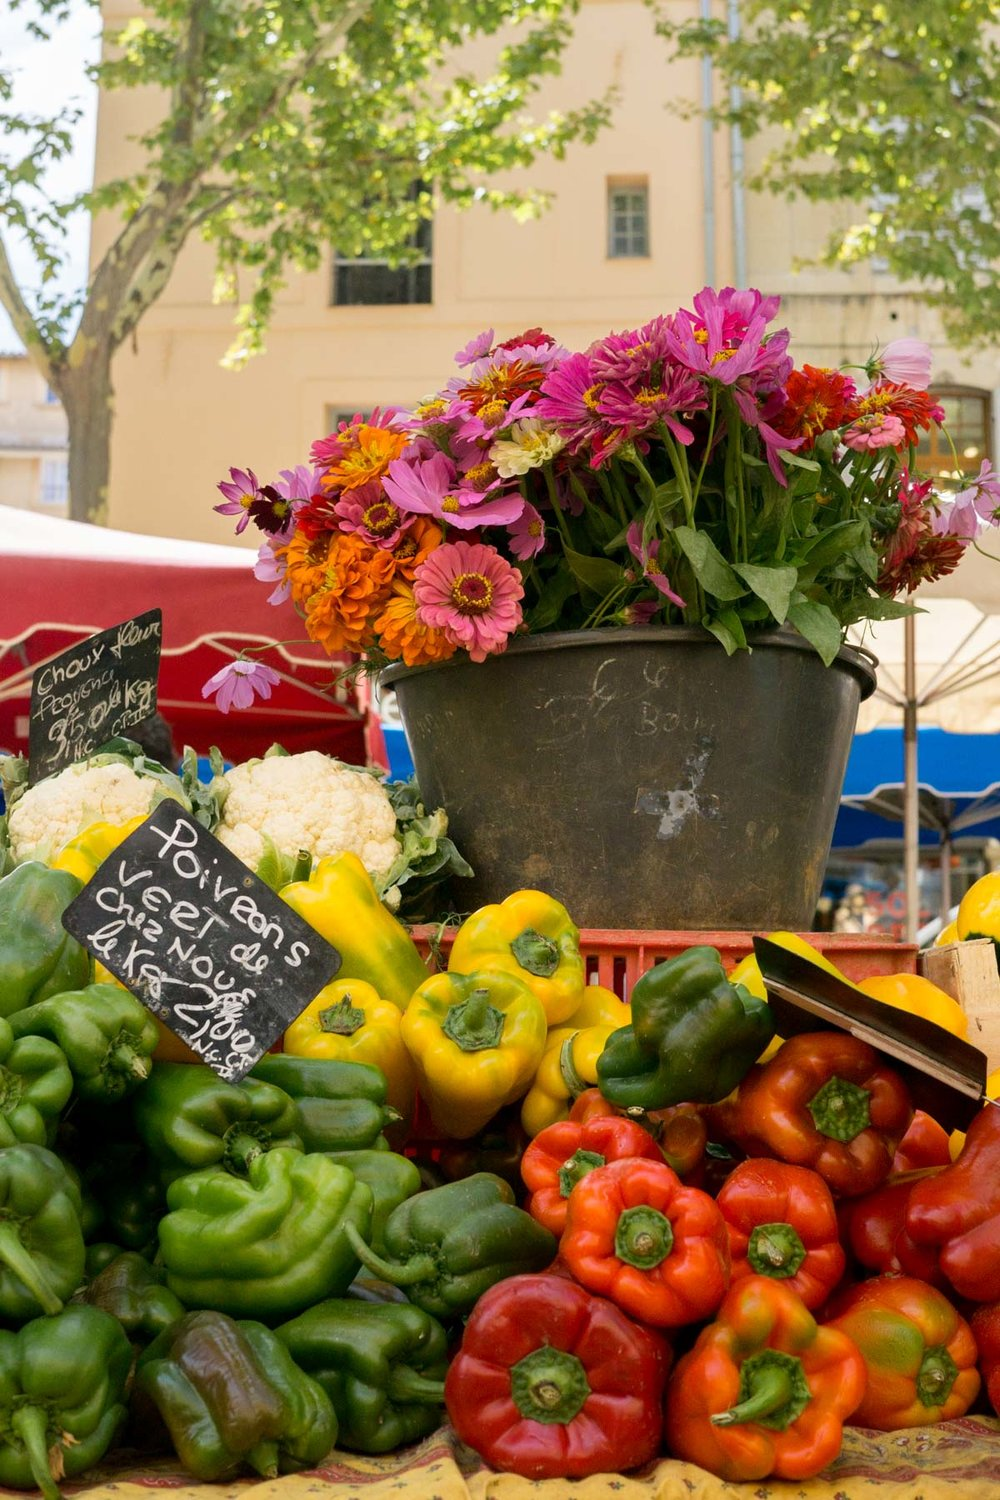 Discover the best markets to visit in Aix-en-Provence with this useful travel guide. | Aix en Provence Markets | France Travel Tips